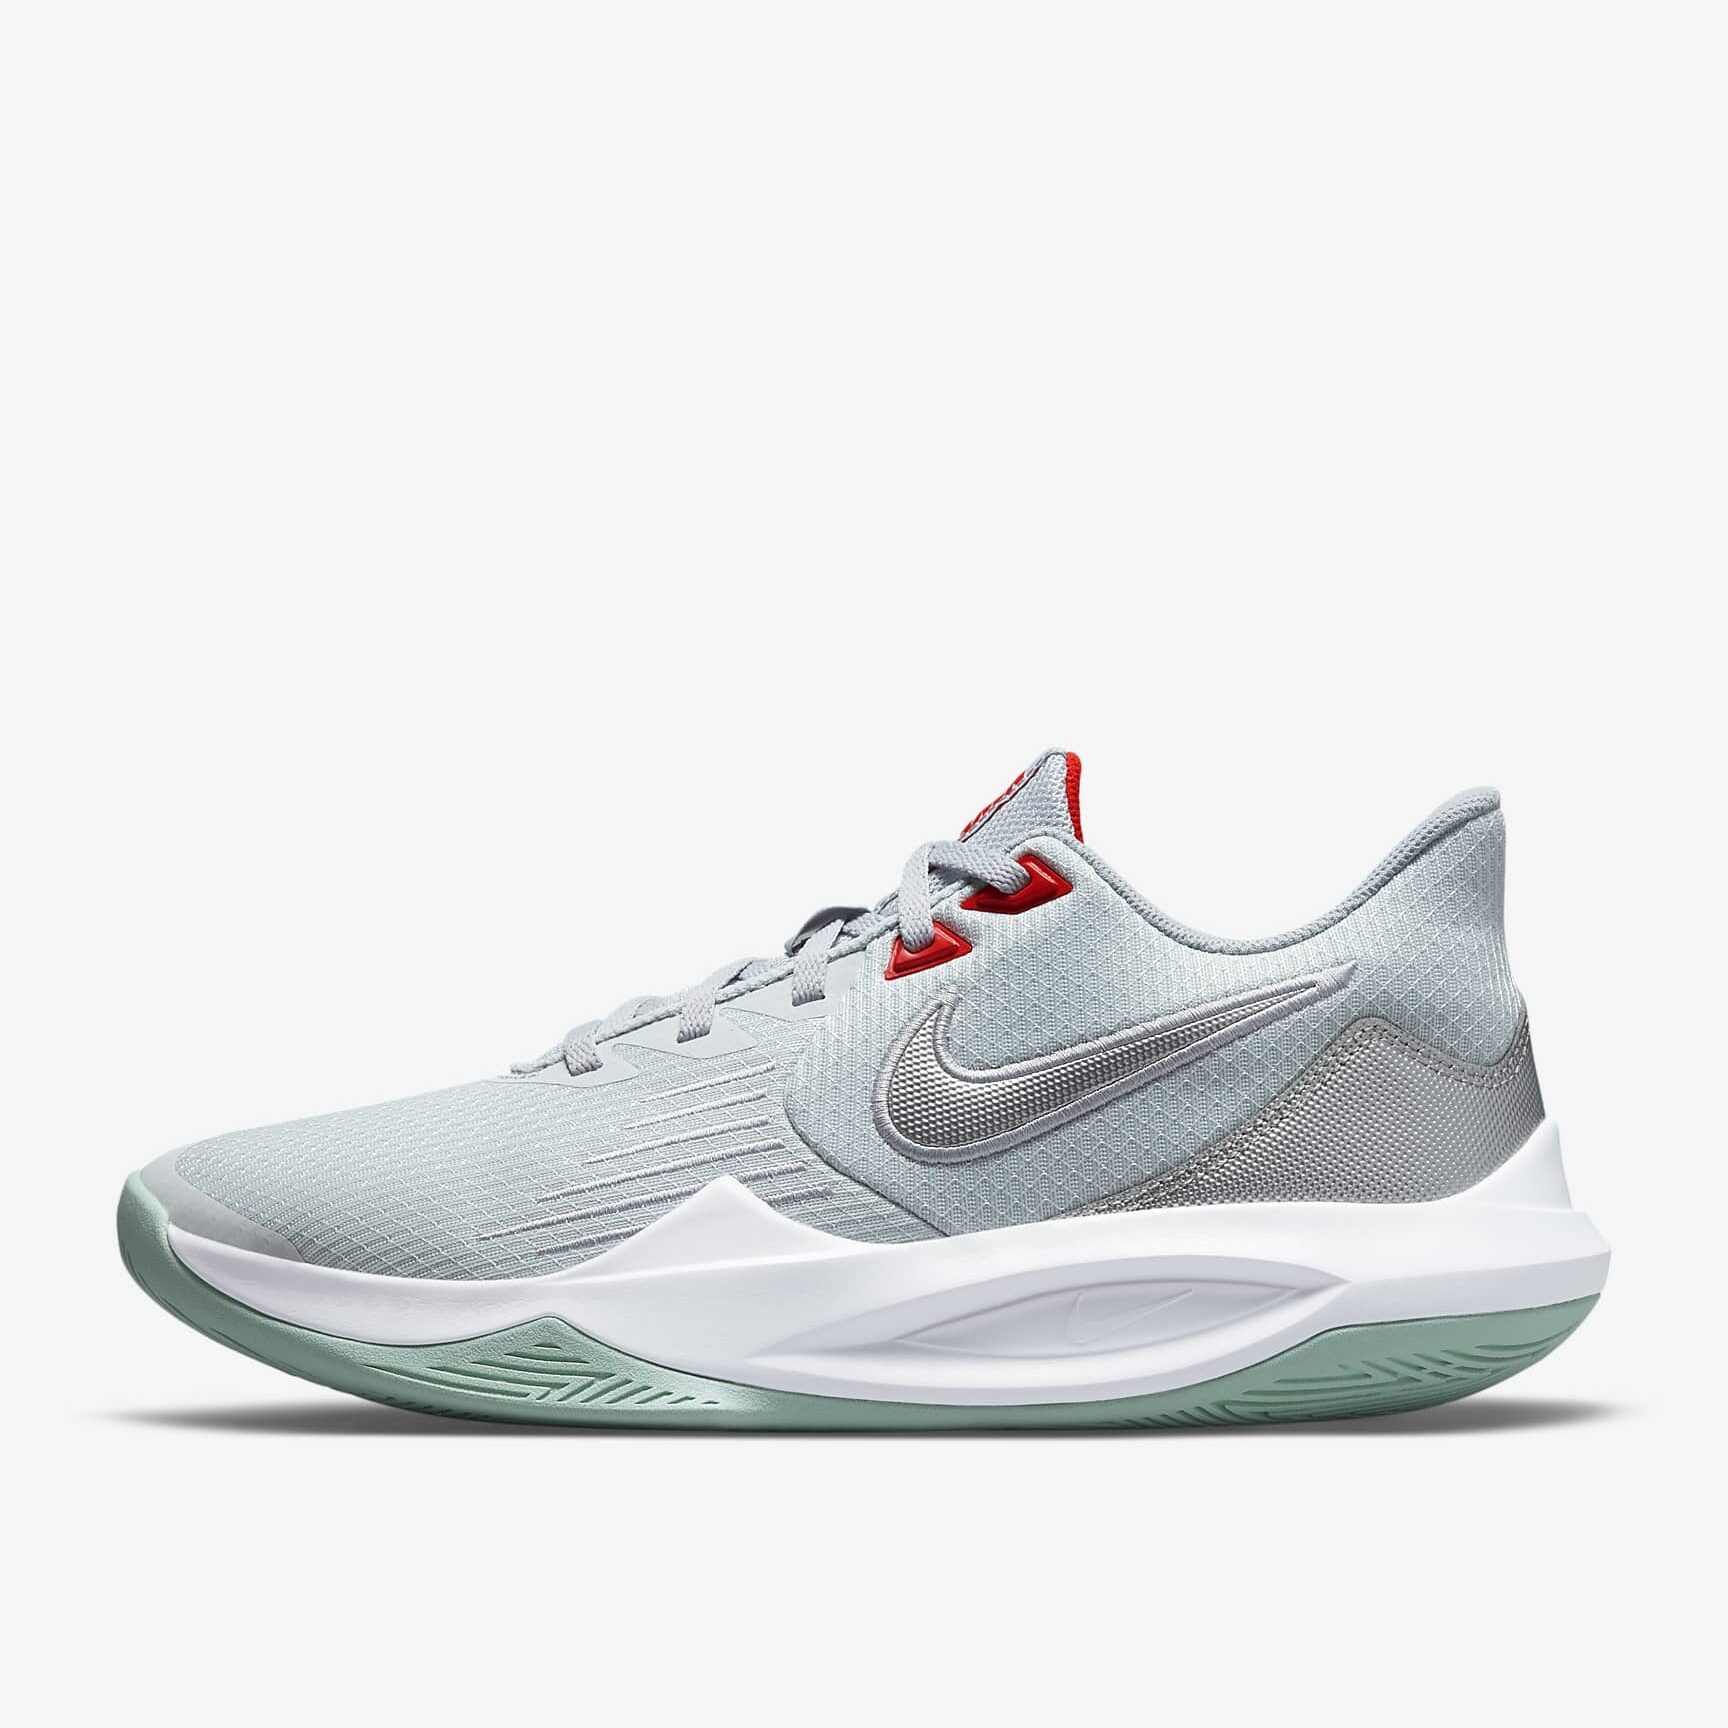 Nike Precision 5 Review: Side 1